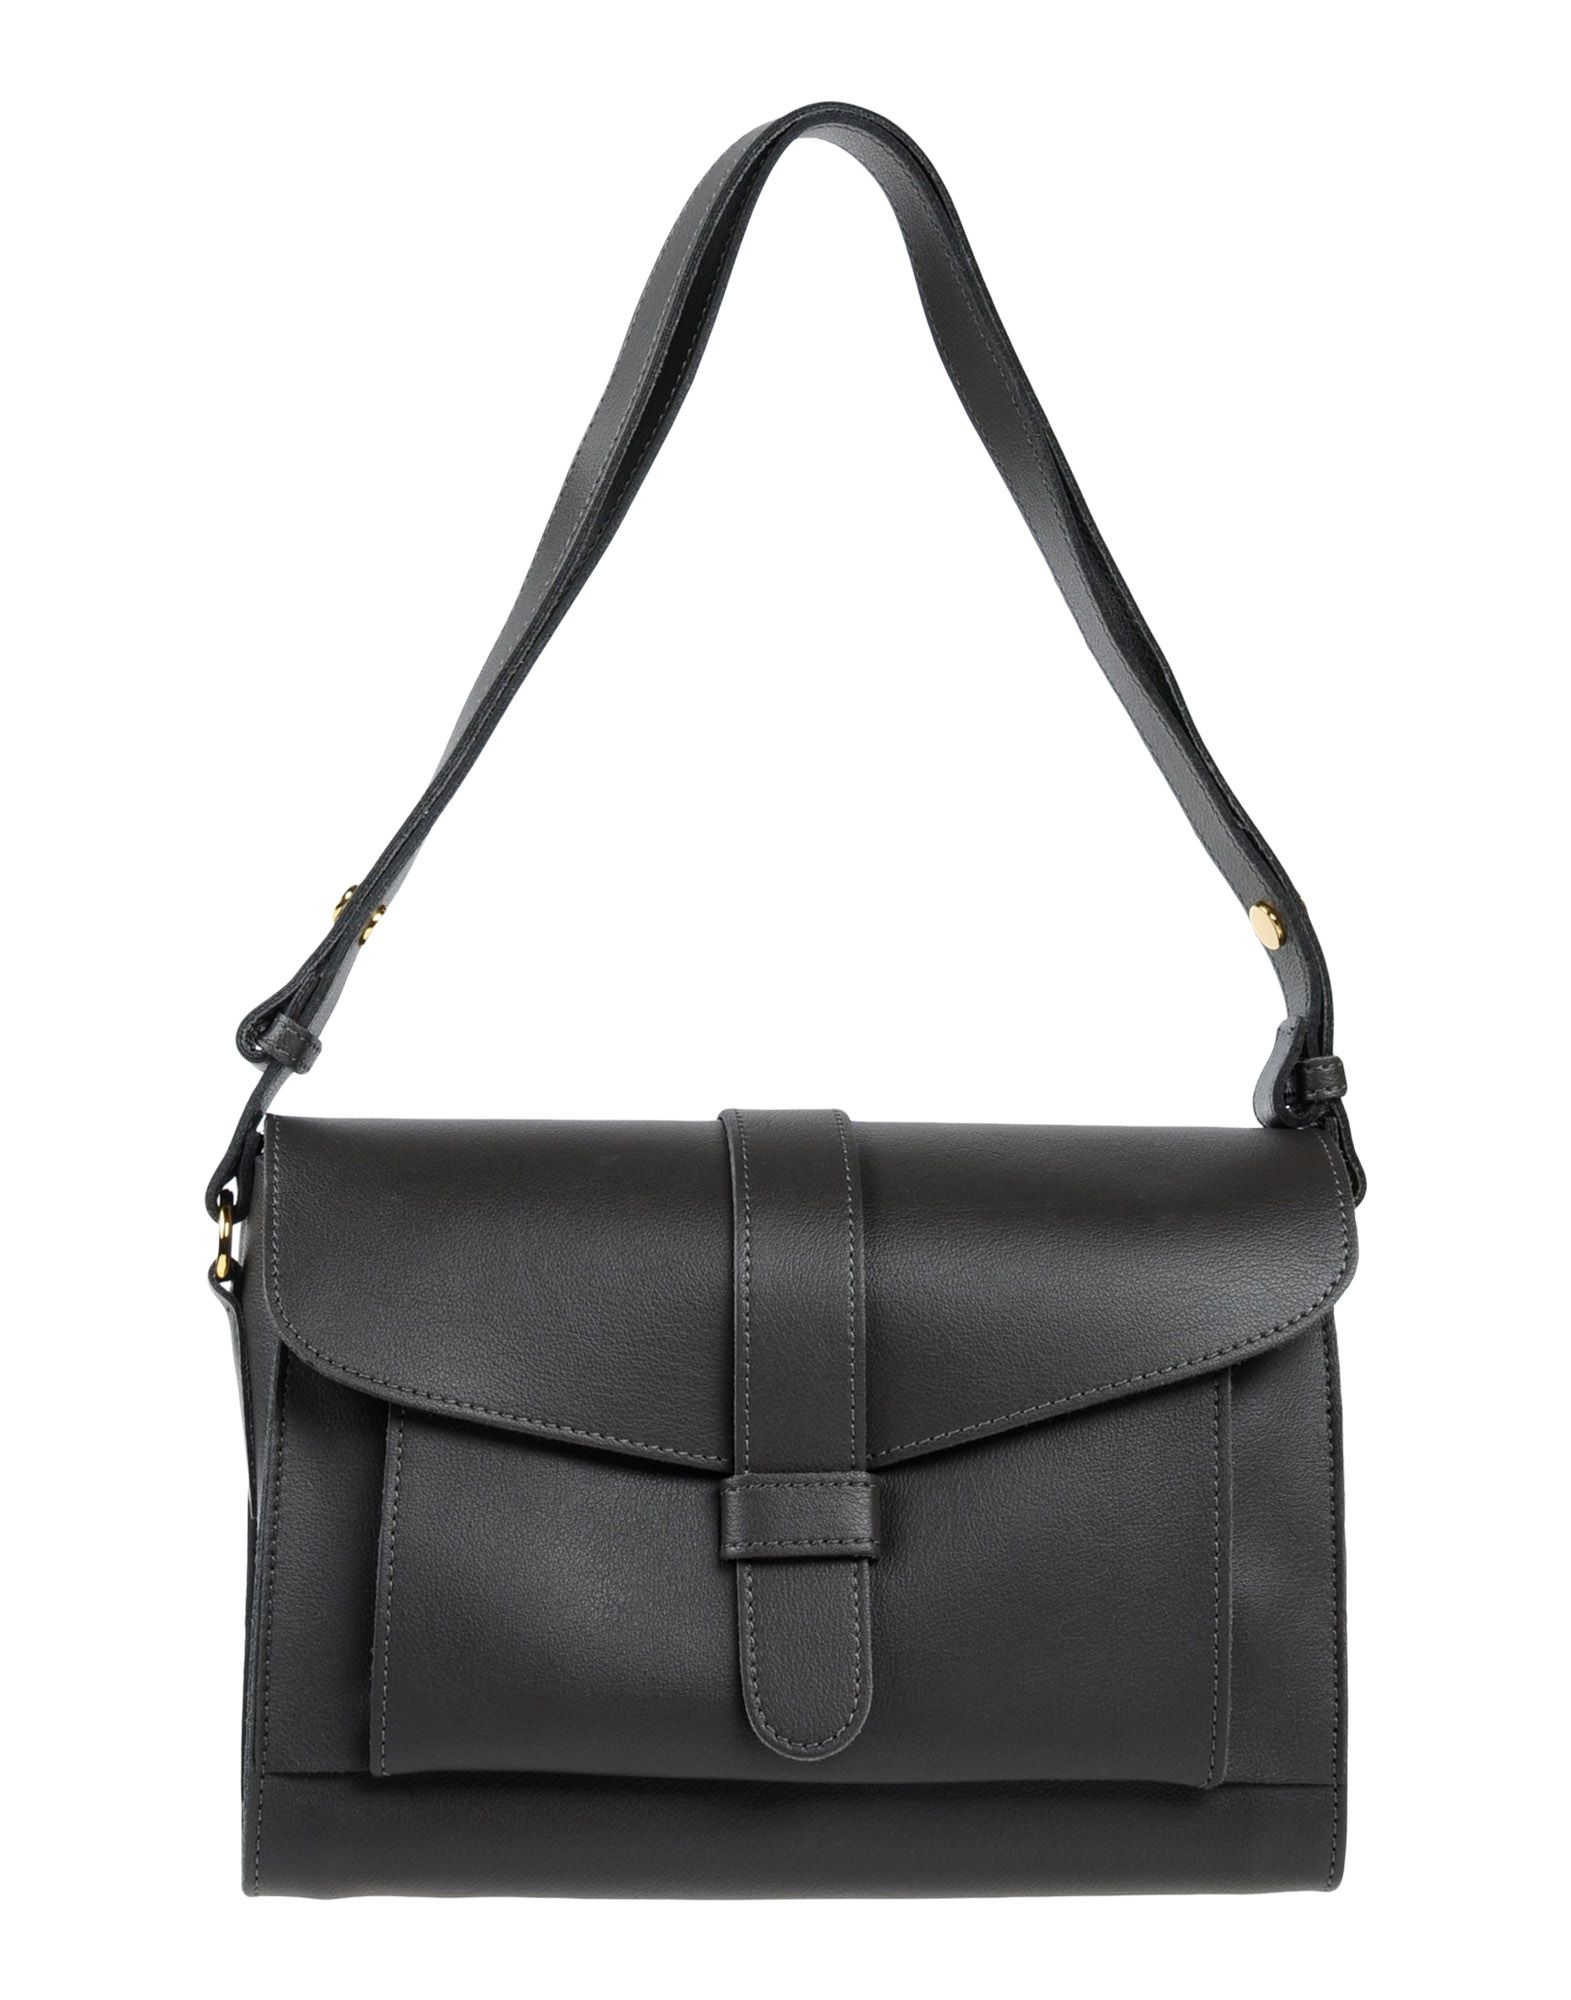 Costume National HANDBAGS - Medium leather bags su YOOX.COM 4ZmV2SSB